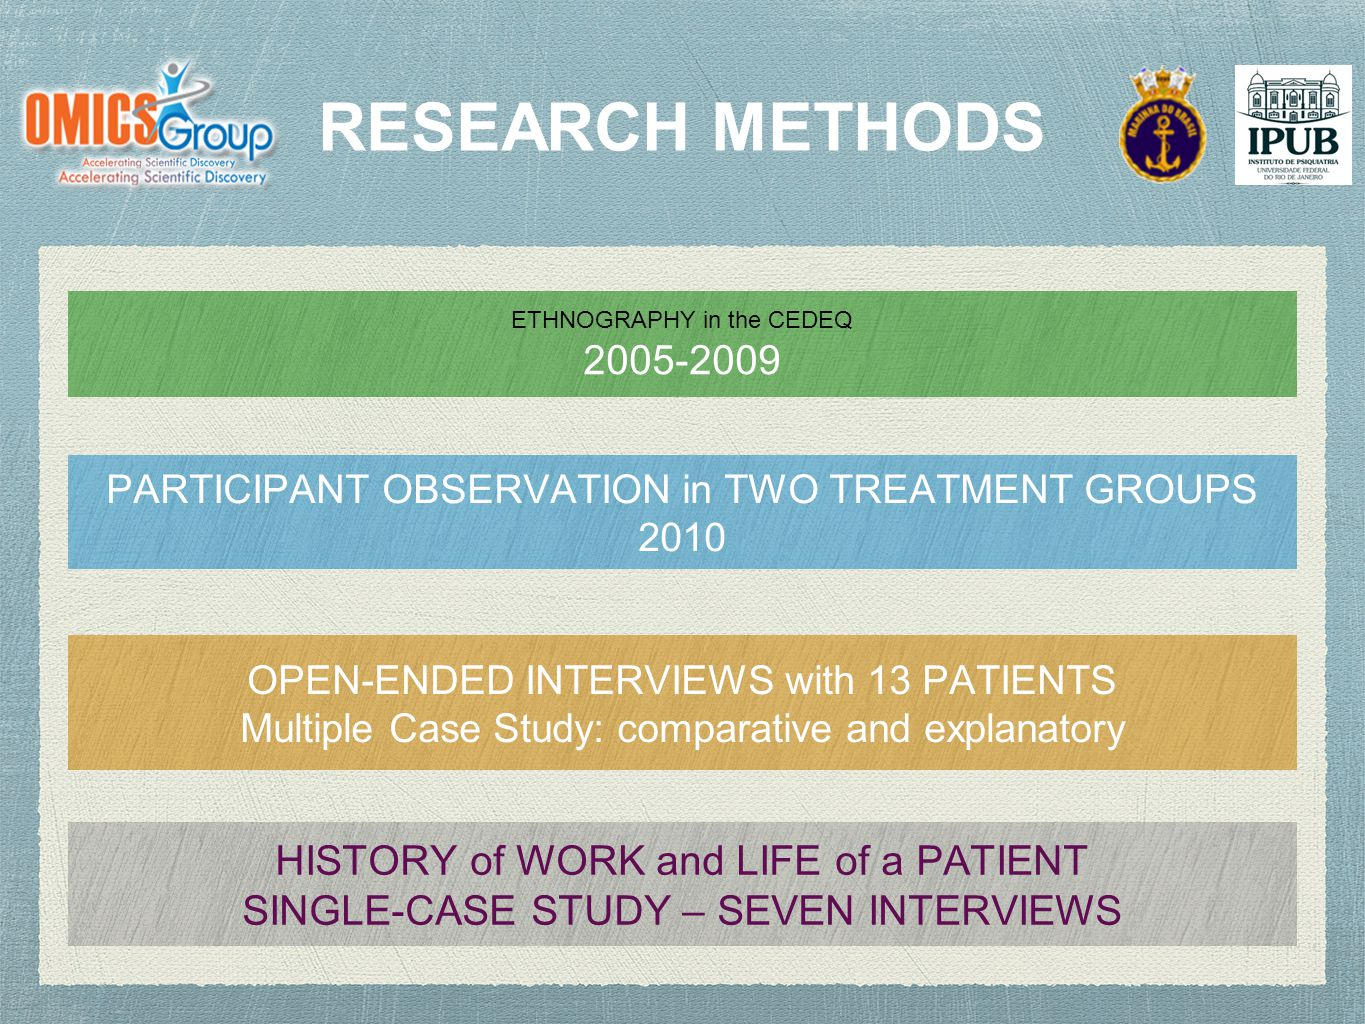 RESEARCH METHODS ETHNOGRAPHY in the CEDEQ 2005-2009 PARTICIPANT OBSERVATION in TWO TREATMENT GROUPS 2010 OPEN-ENDED INTERVIEWS with 13 PATIENTS Multiple Case Study: comparative and explanatory HISTORY of WORK and LIFE of a PATIENT SINGLE-CASE STUDY – SEVEN INTERVIEWS